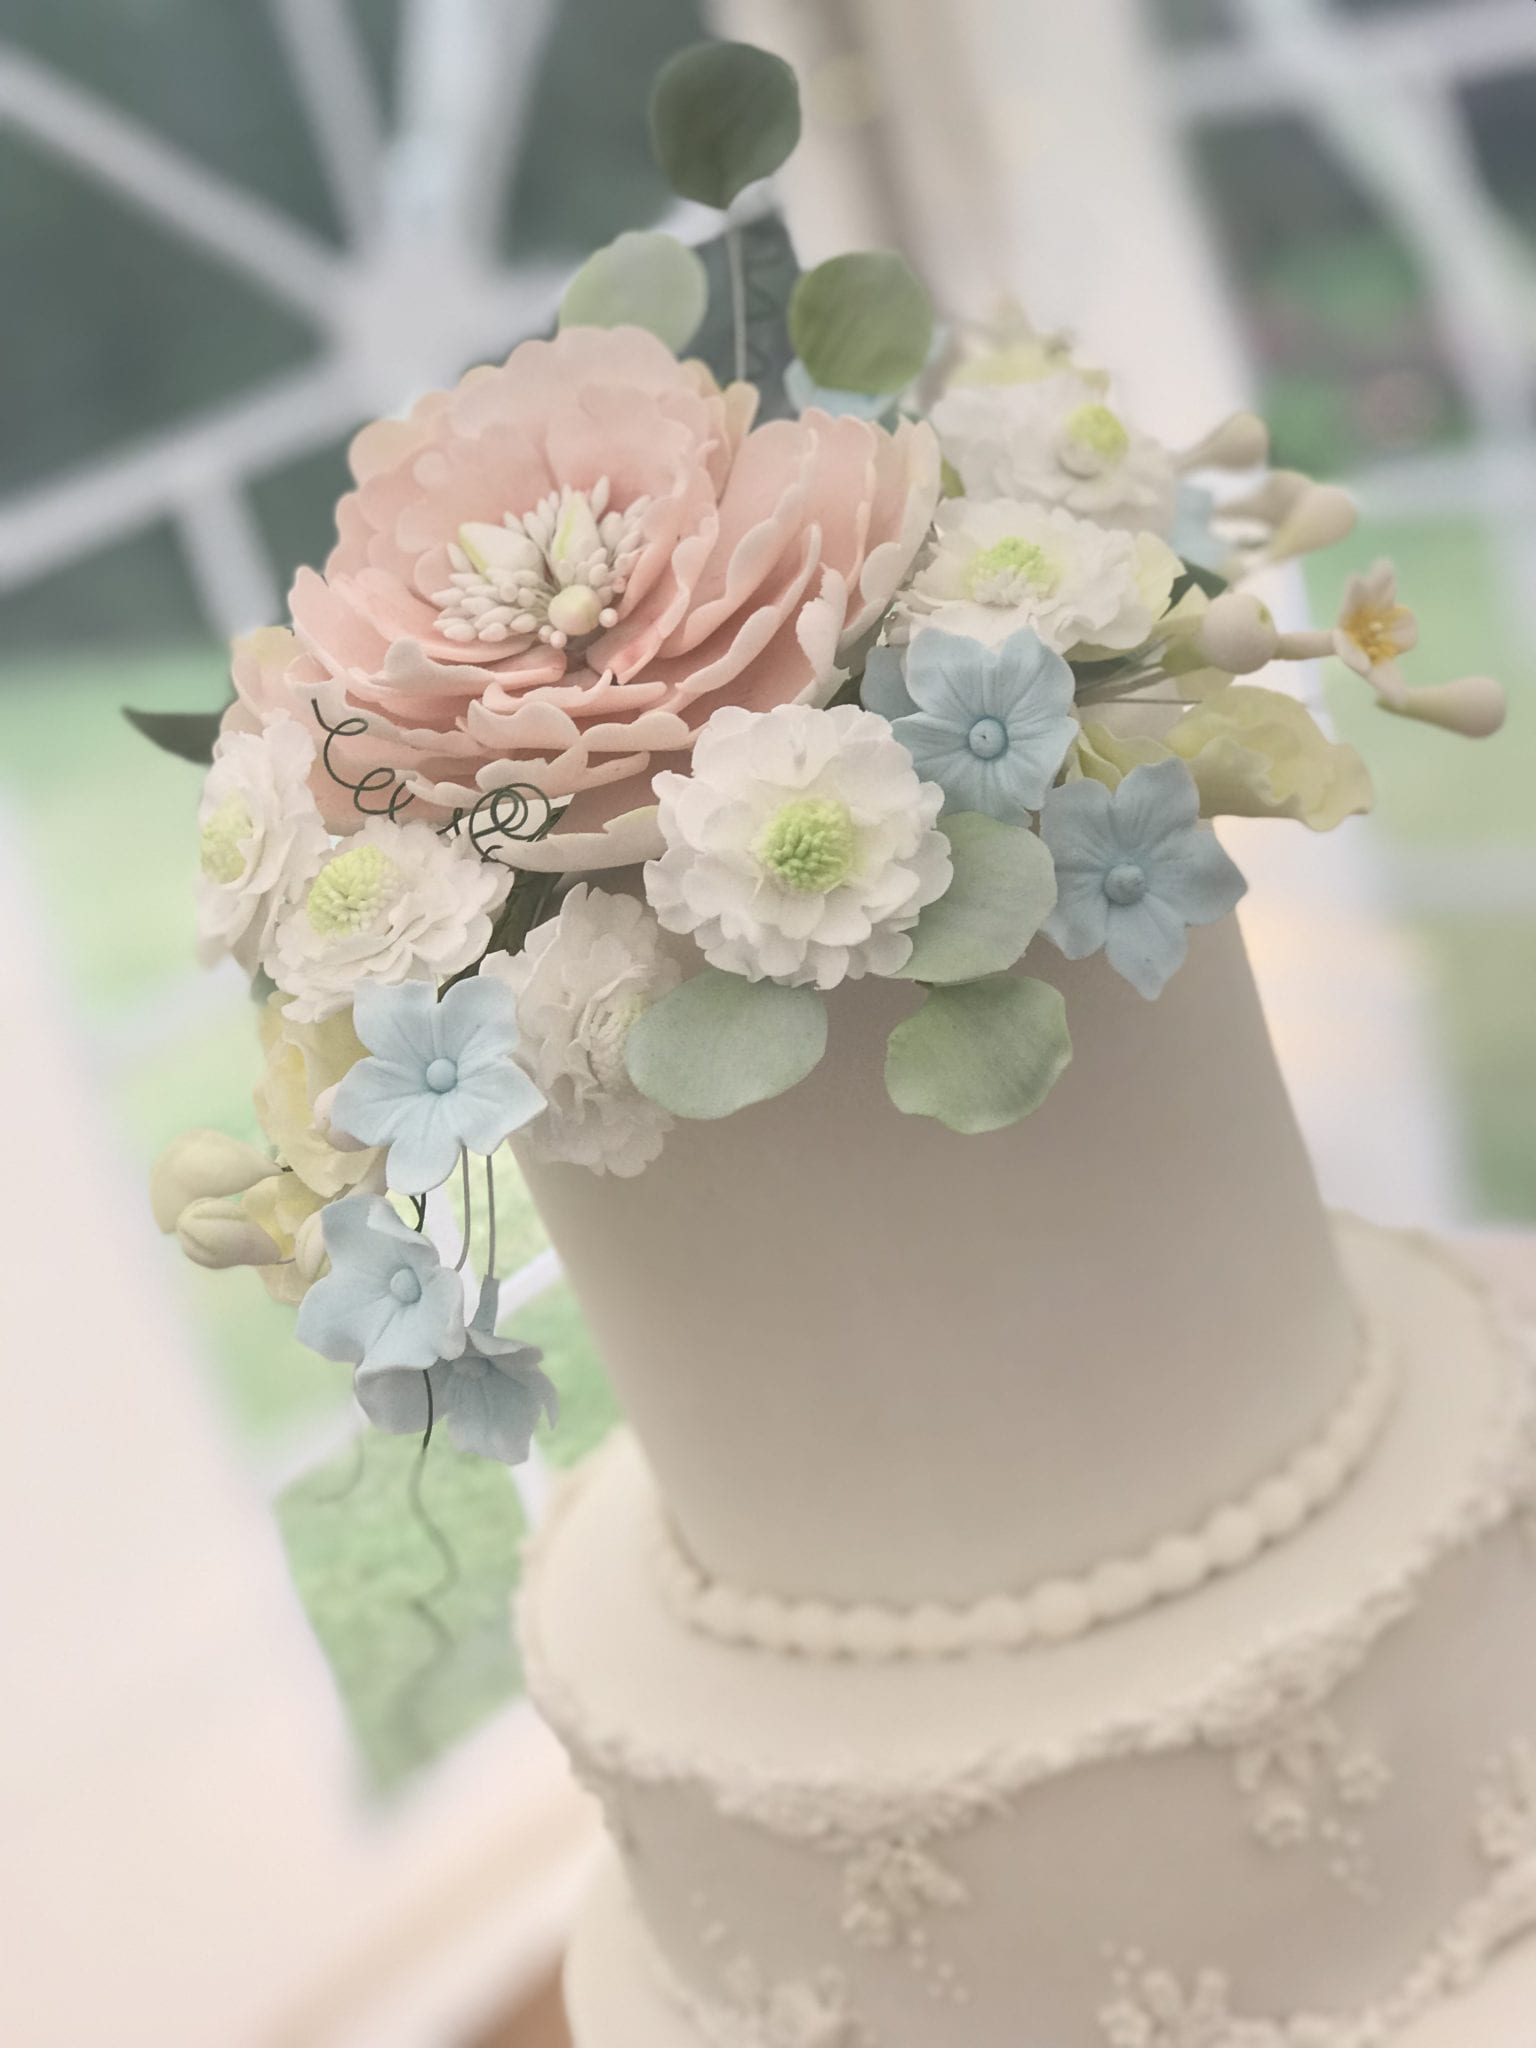 Two Tier Stacked Cake – Saturday 4th & Sunday 5th April 2020 10.30 – 4pm, £180